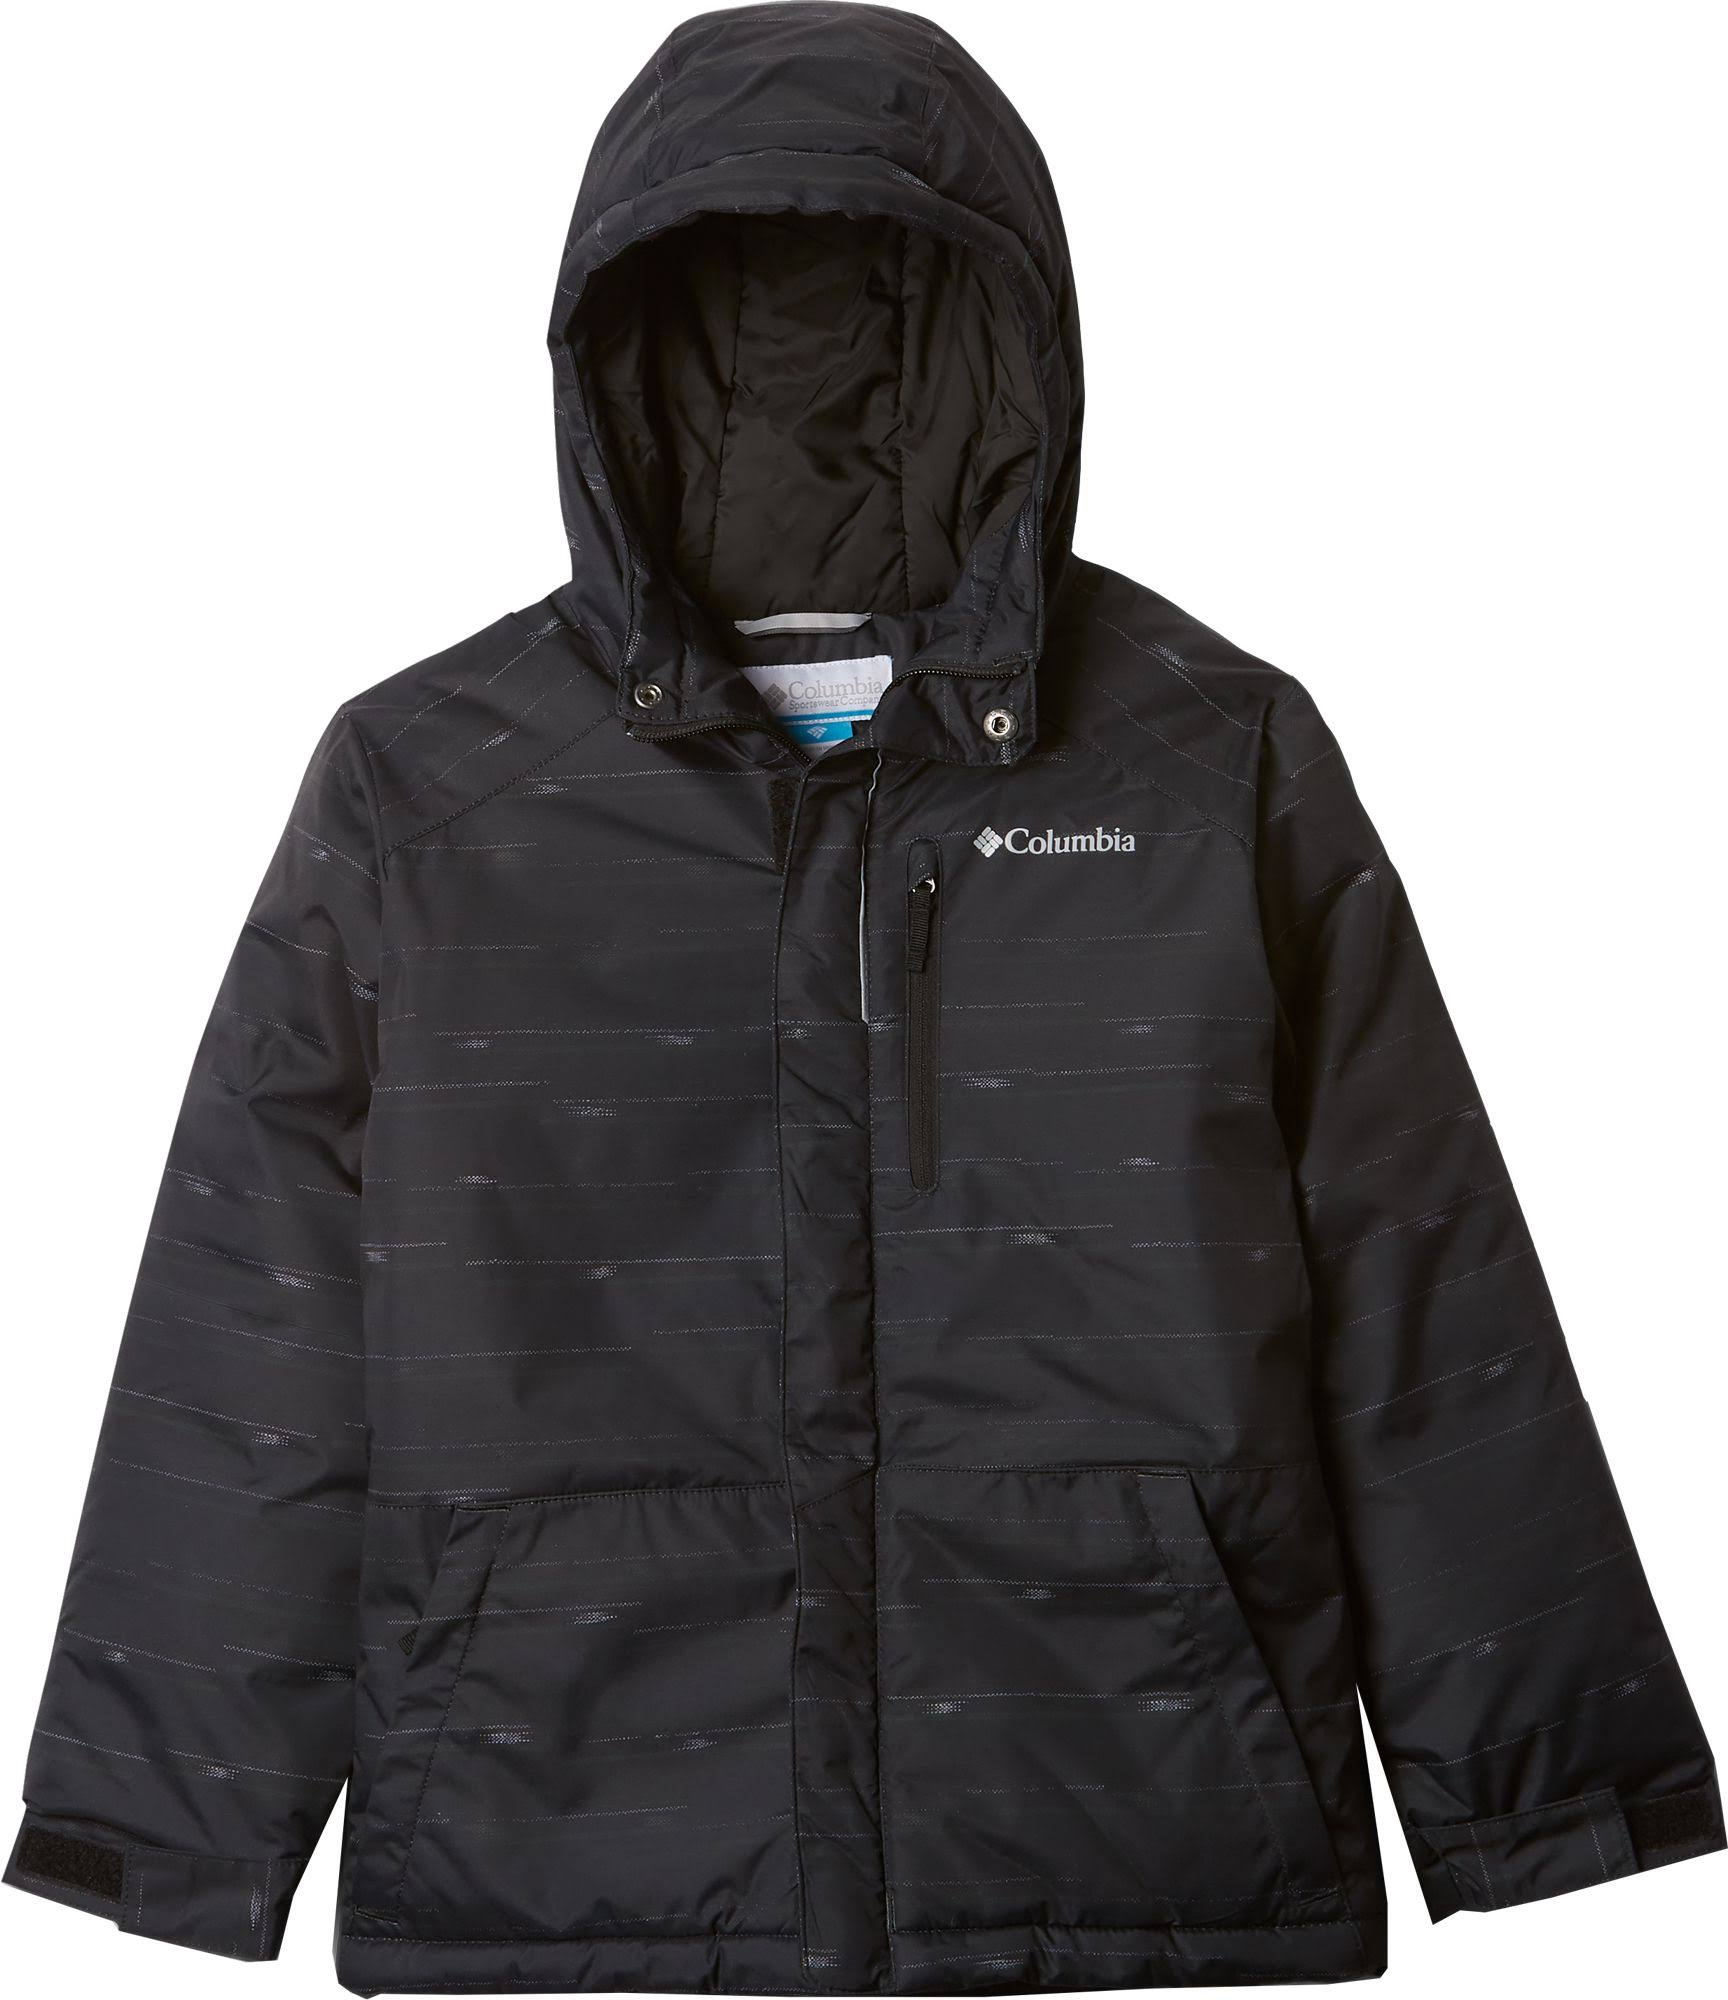 Columbia Boys' Lightning Lift Jacket - M - Black Stripe